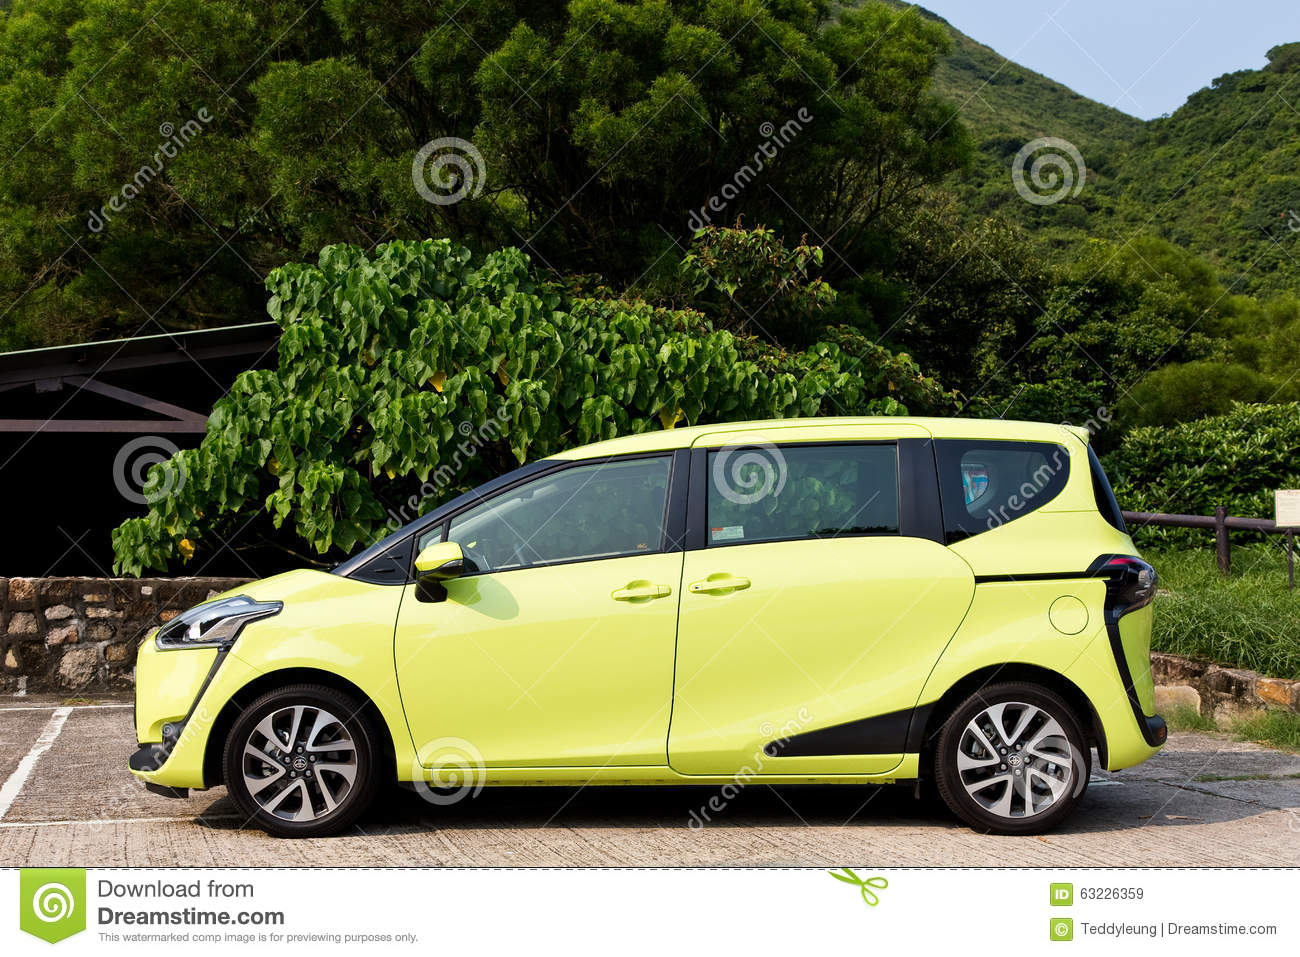 Toyota SIENTA 2015 Test Drive Day Editorial Stock Image ...